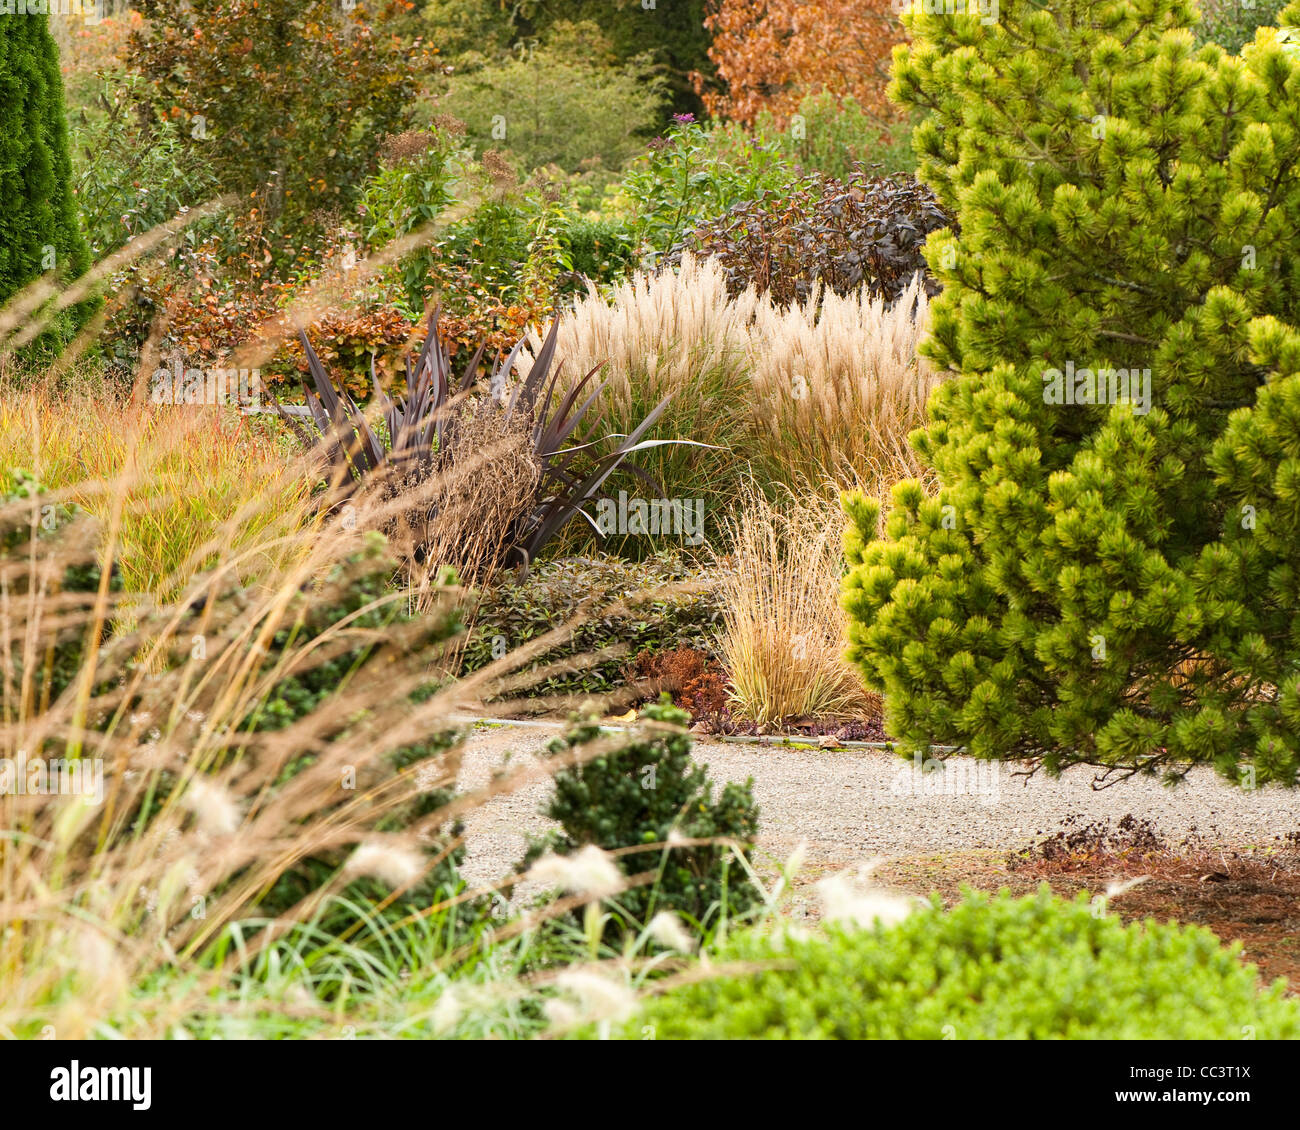 Ornamental grasses and other plants in the foliage and plantsmans ornamental grasses and other plants in the foliage and plantsmans garden in autumn rhs rosemoor devon england uk workwithnaturefo